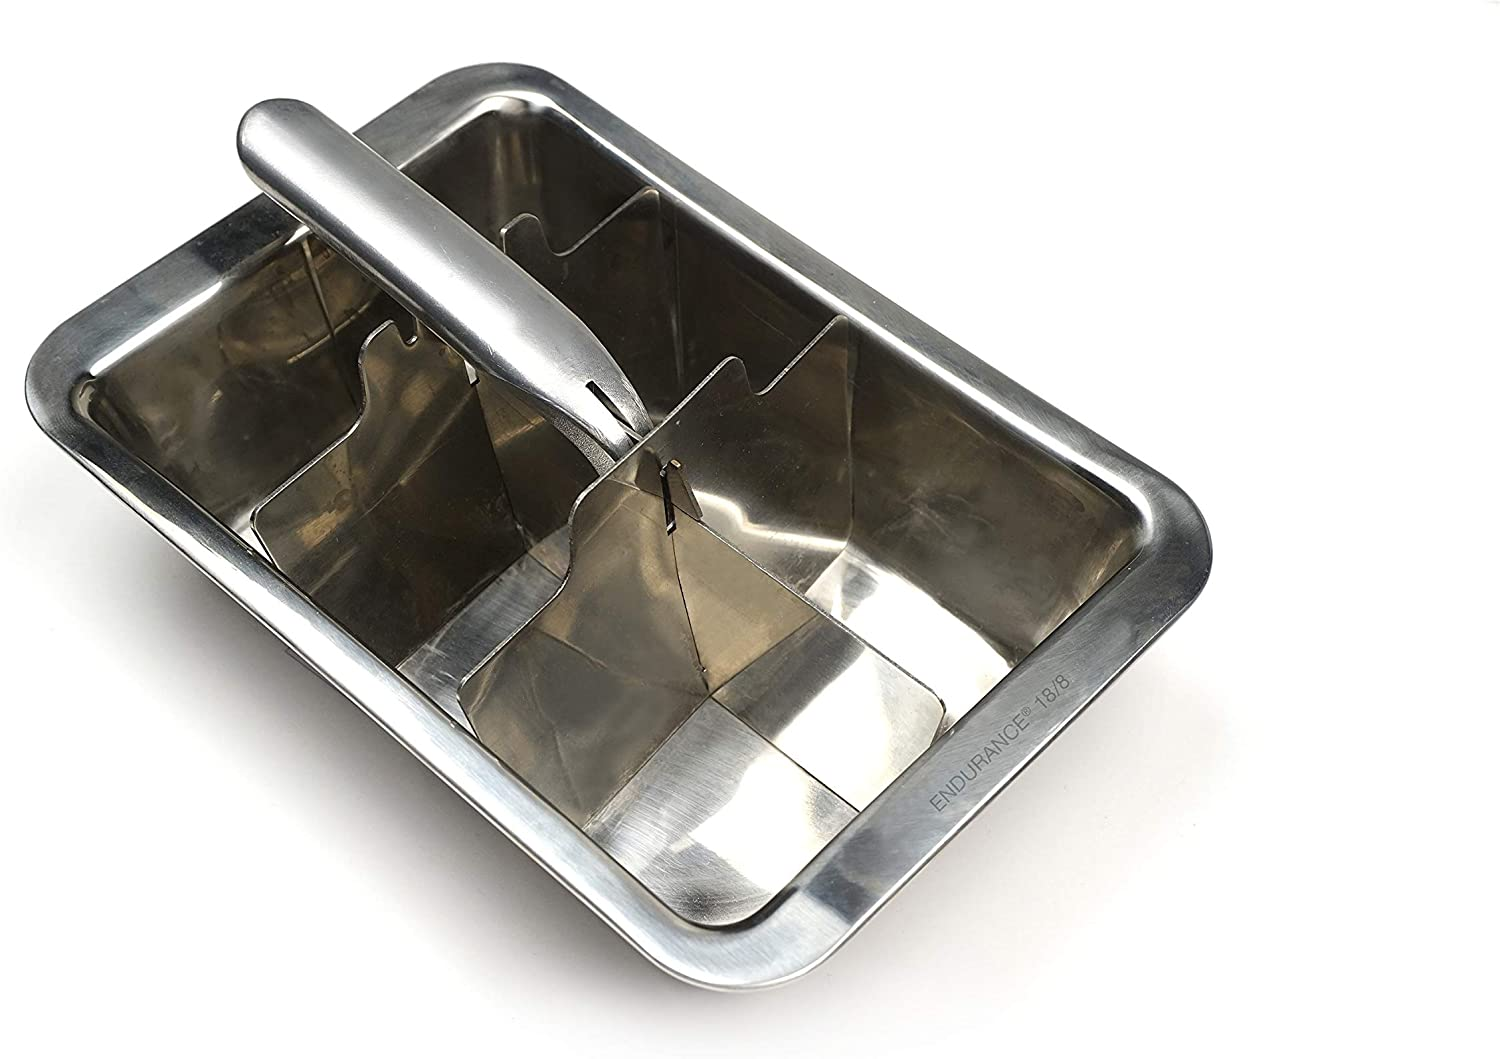 RSVP International Endurance Stainless Steel Large Ice Tray, 6 Cubes | Does Not Absorb Odors or Over Dilute | Perfect for Scotch, Whiskey, Broth, Fruit Juice and more | Dishwasher Safe